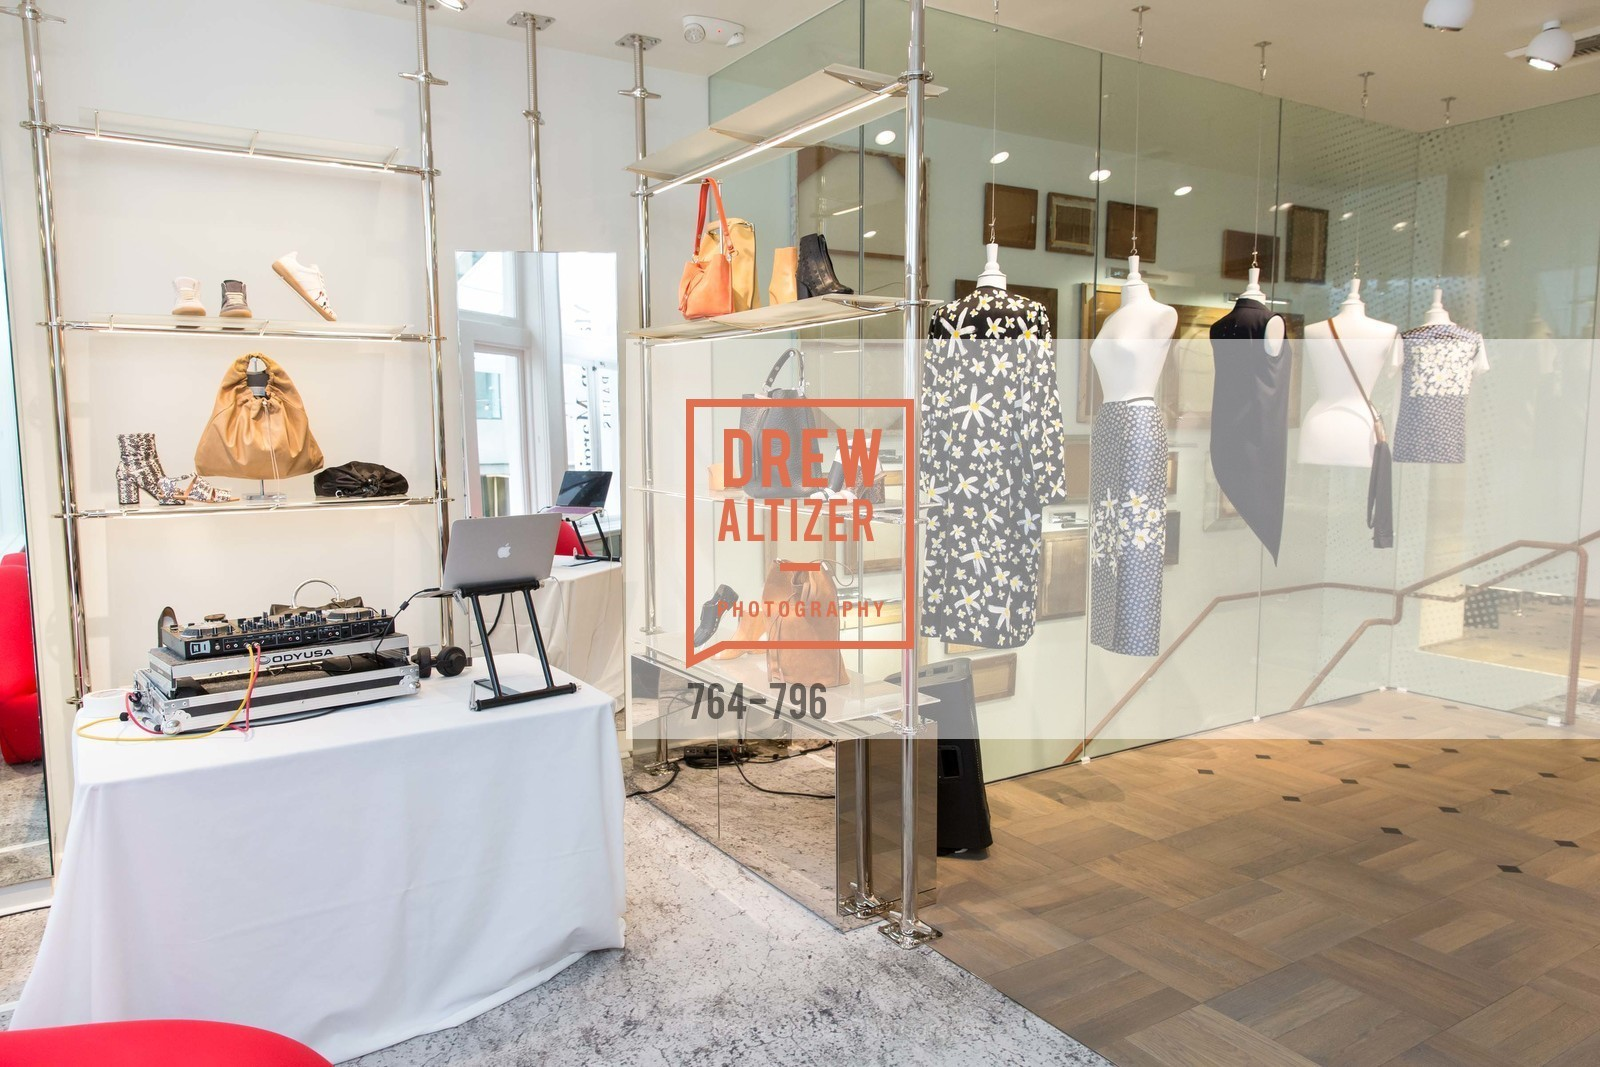 Atmosphere, MAISON MARGIELA San Francisco Boutique Grand Opening Event, US, April 24th, 2015,Drew Altizer, Drew Altizer Photography, full-service event agency, private events, San Francisco photographer, photographer California